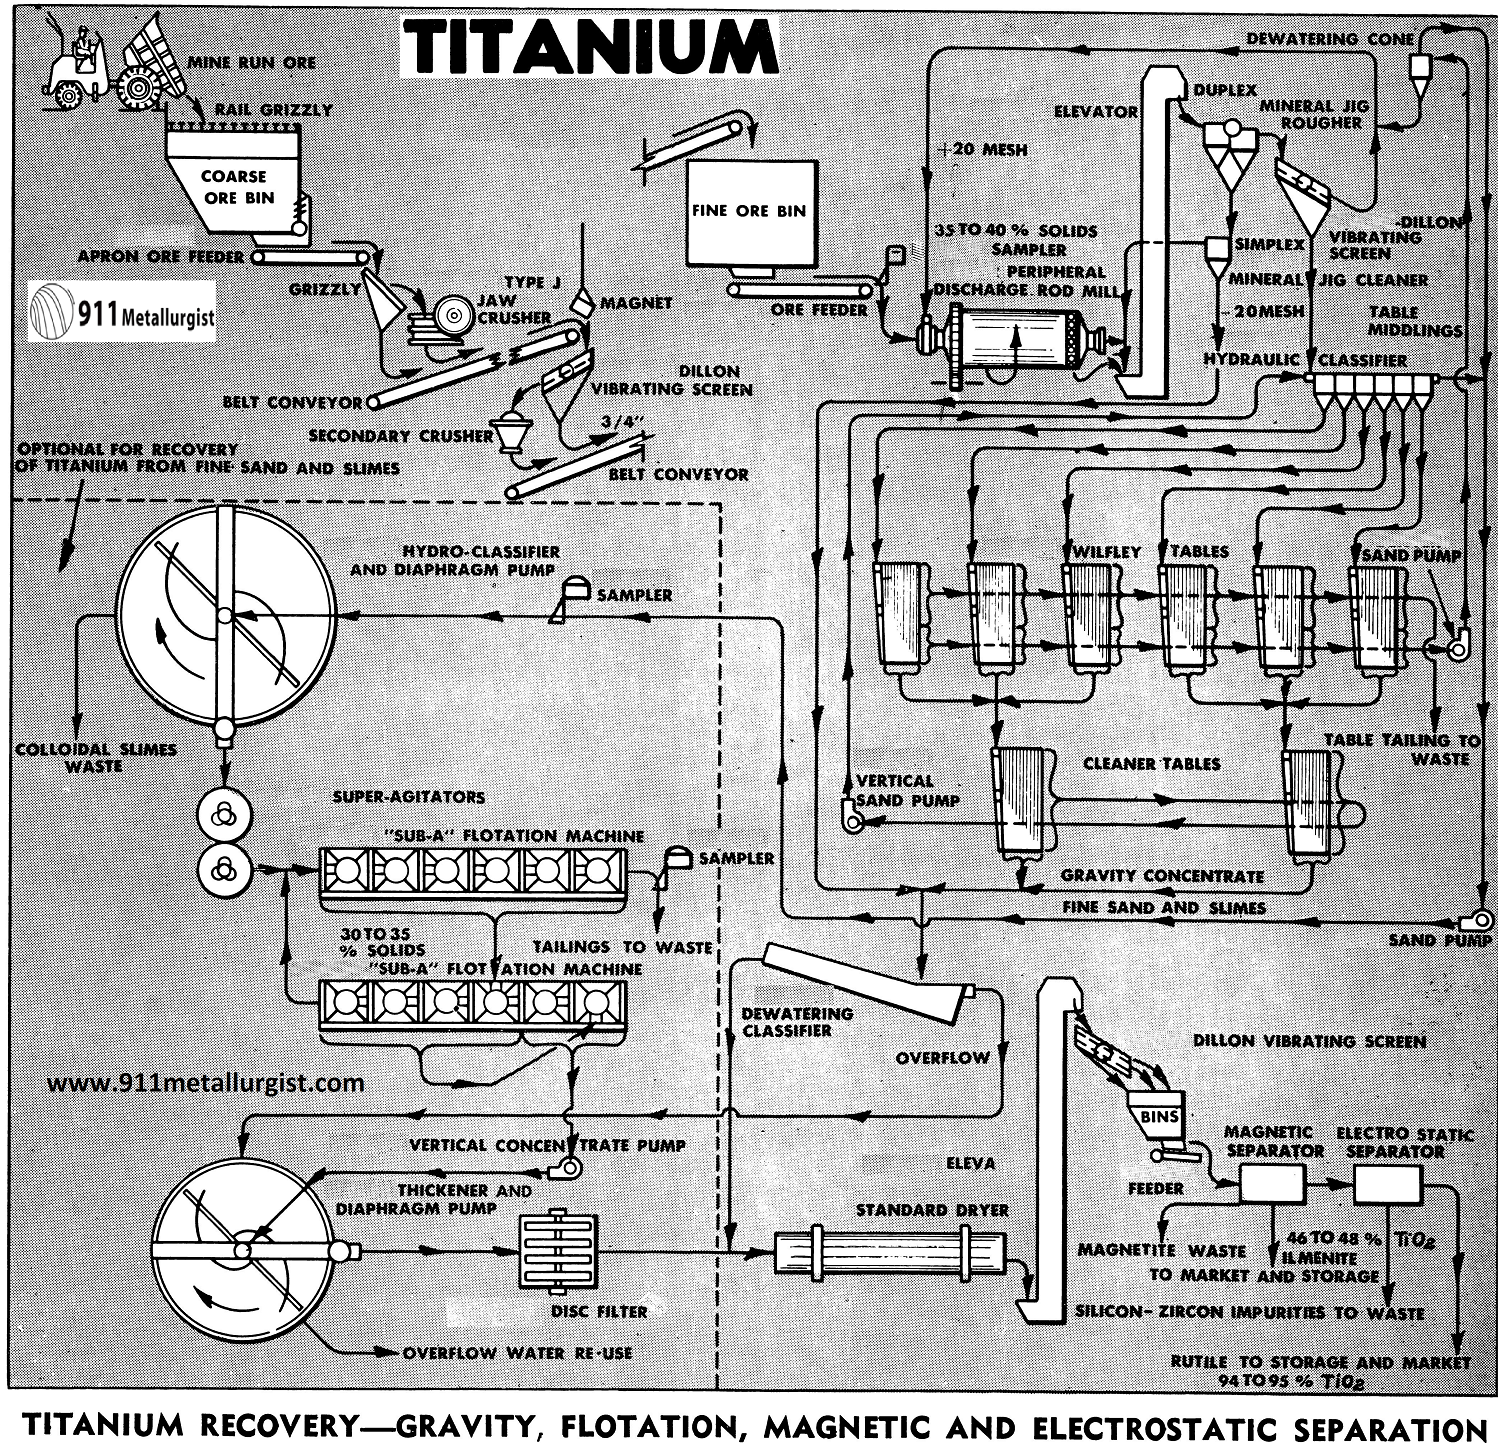 Titanium Recovery—Gravity, Flotation, Magnetic and Electrstatic Separation